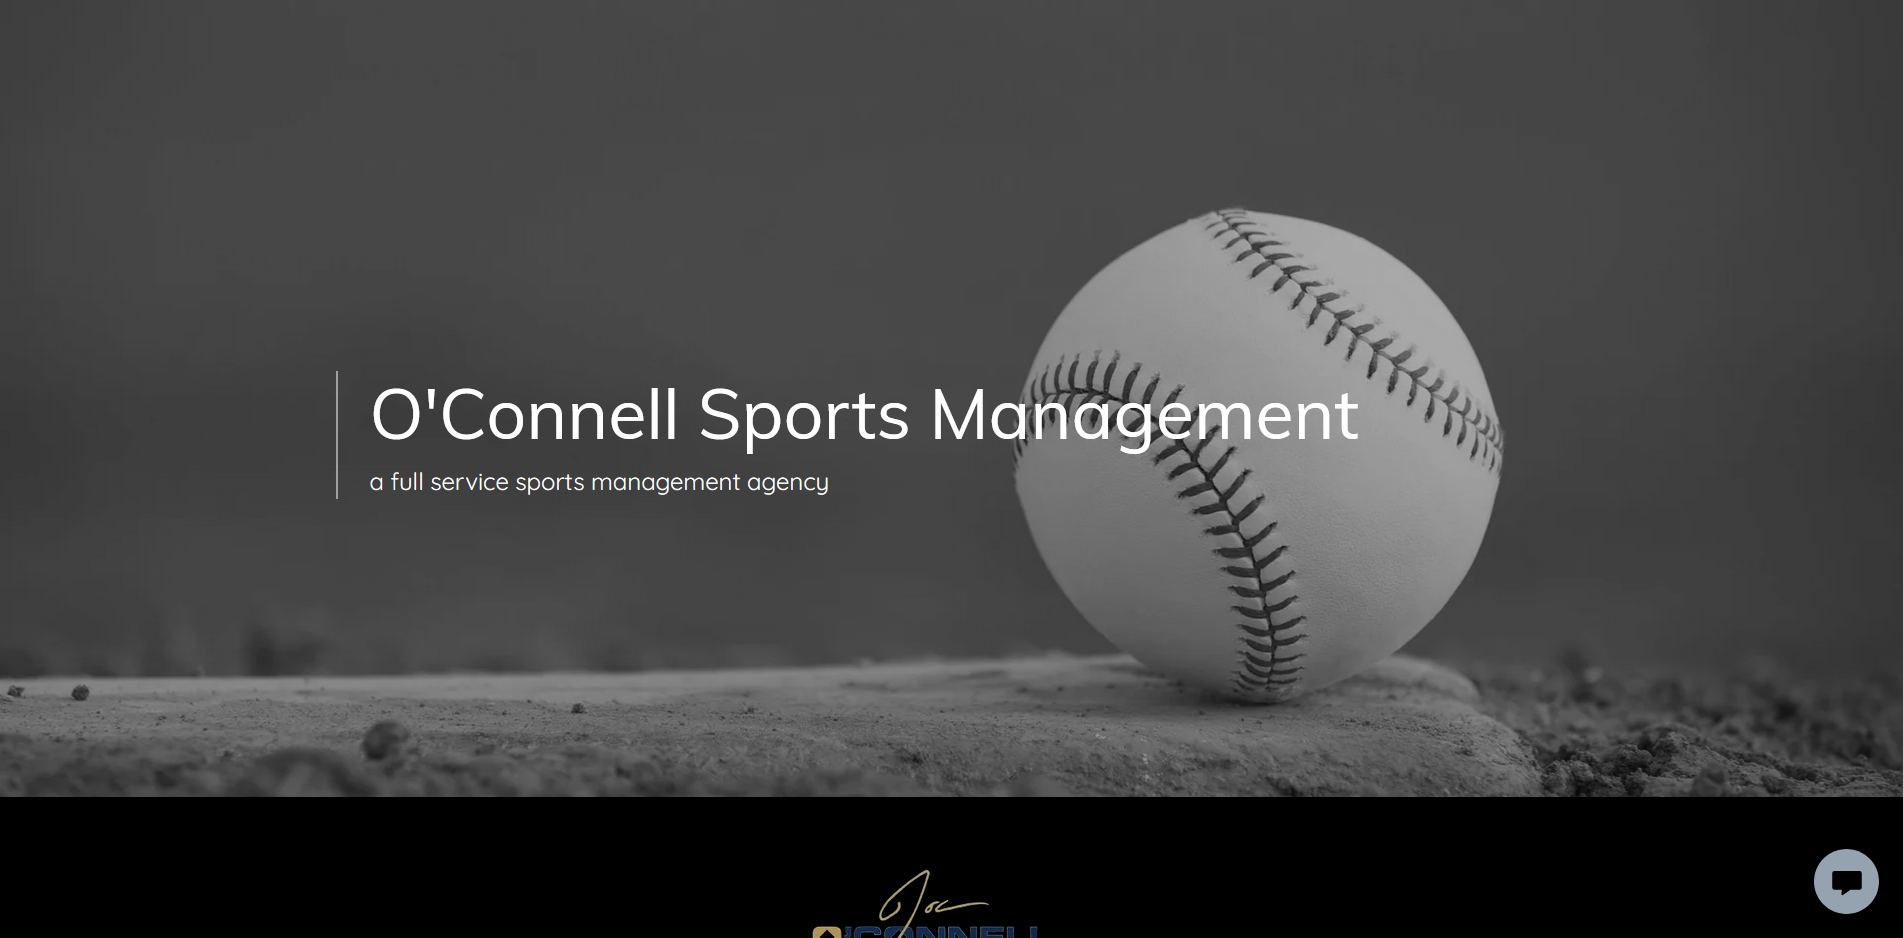 O'Connell Sports Management